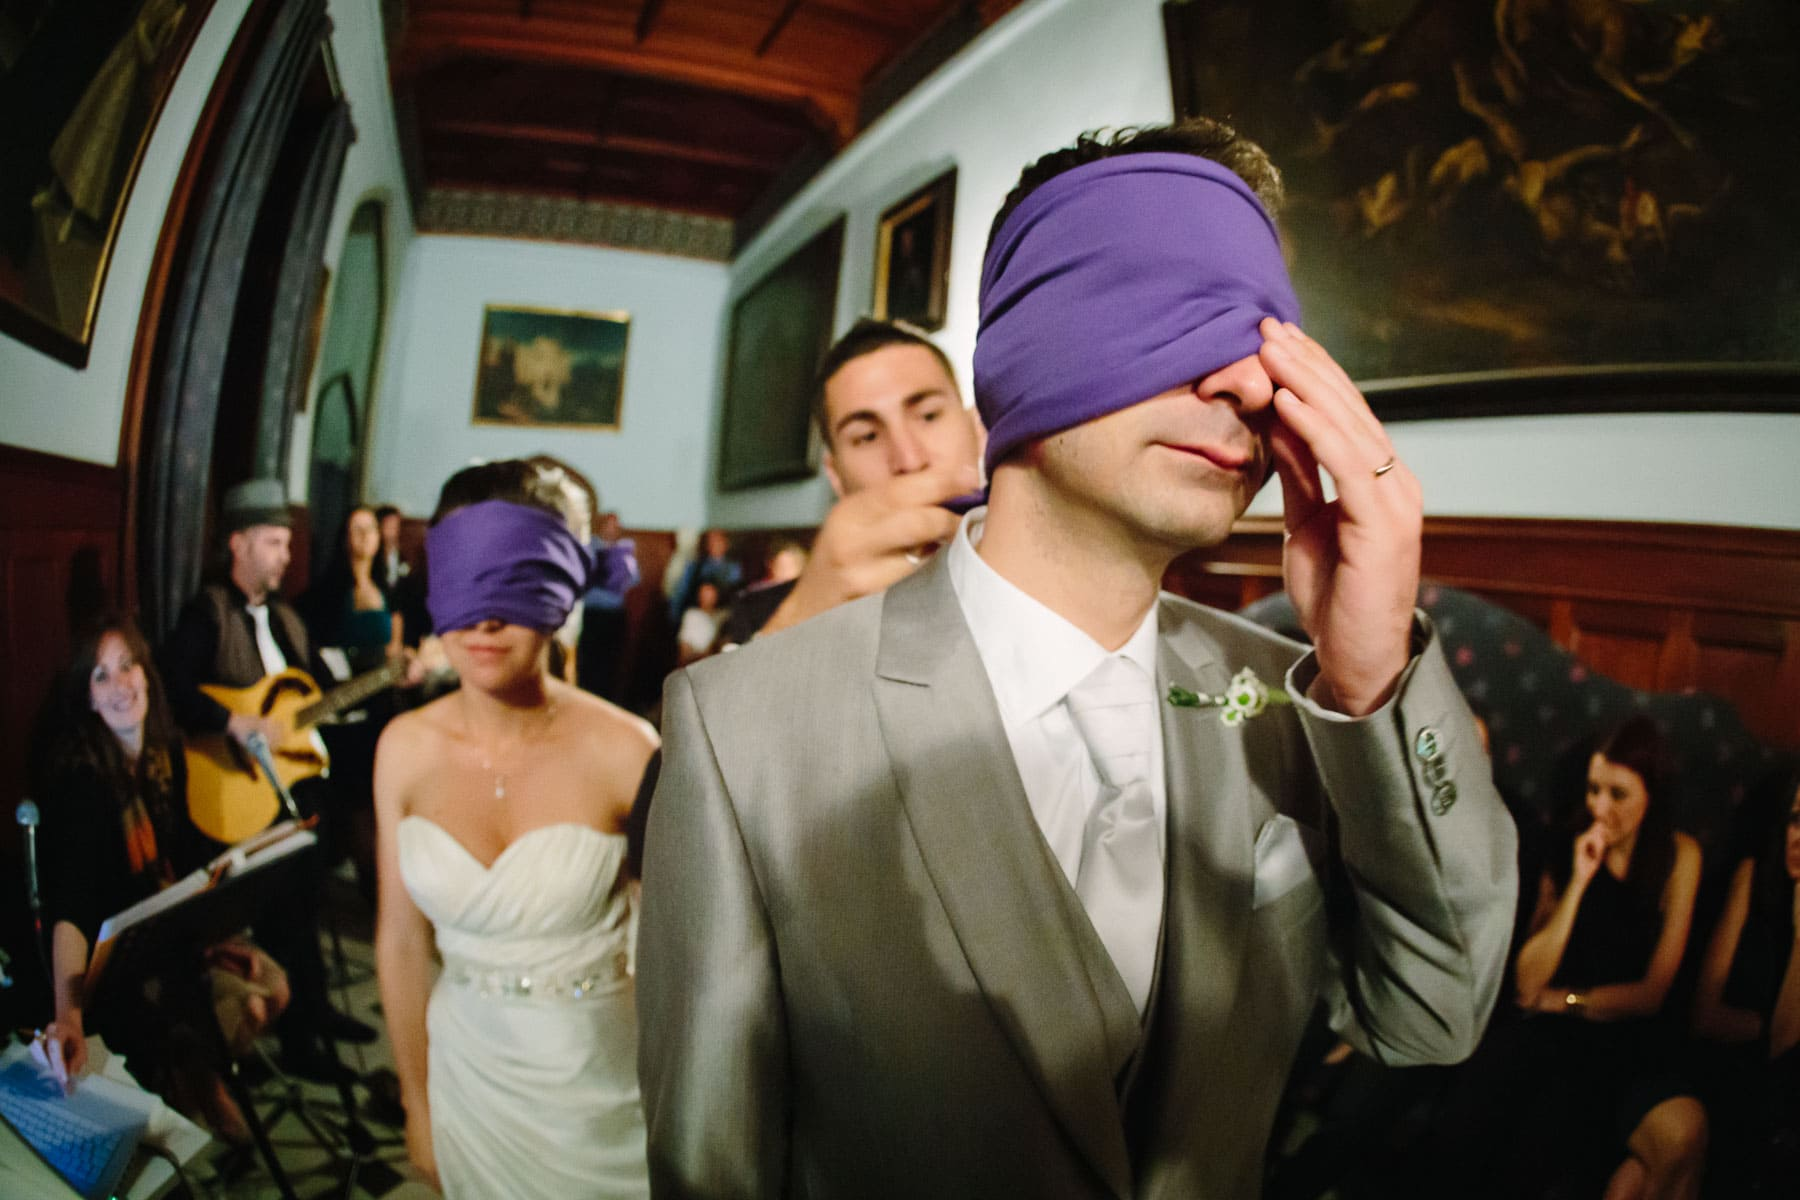 Bride and groom are blindfolded to entertain their guests in a grand hallway at a destination wedding in Castello Dal Pozzo, Italy.